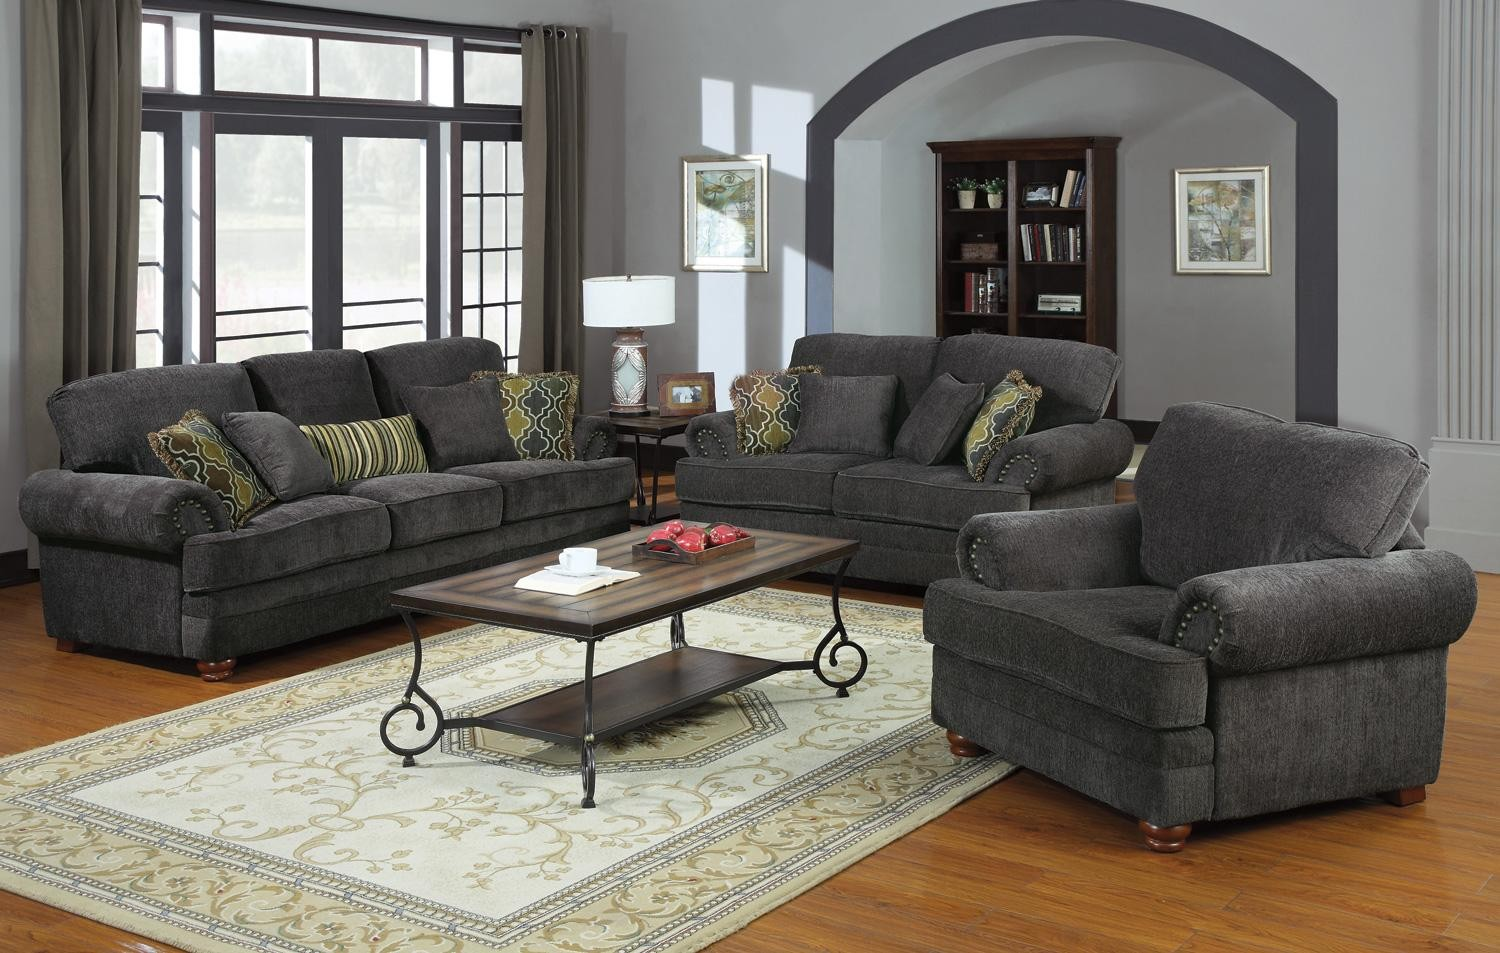 Grey Living Room Furniture Set : Colton Grey Living Room Set from Coaster (504401 ...